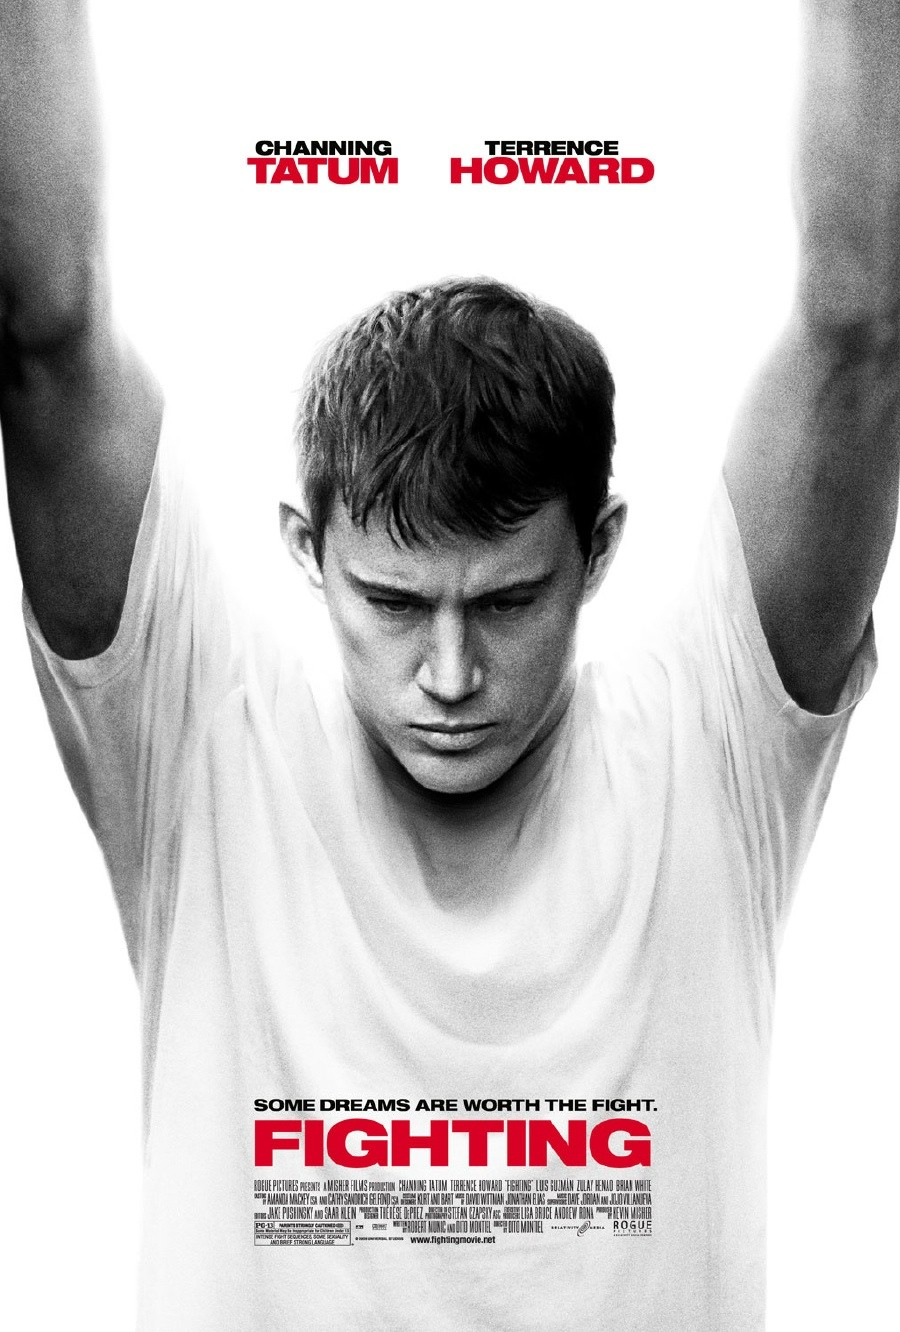 Official Poster for Channing Tatum's 'Fighting'